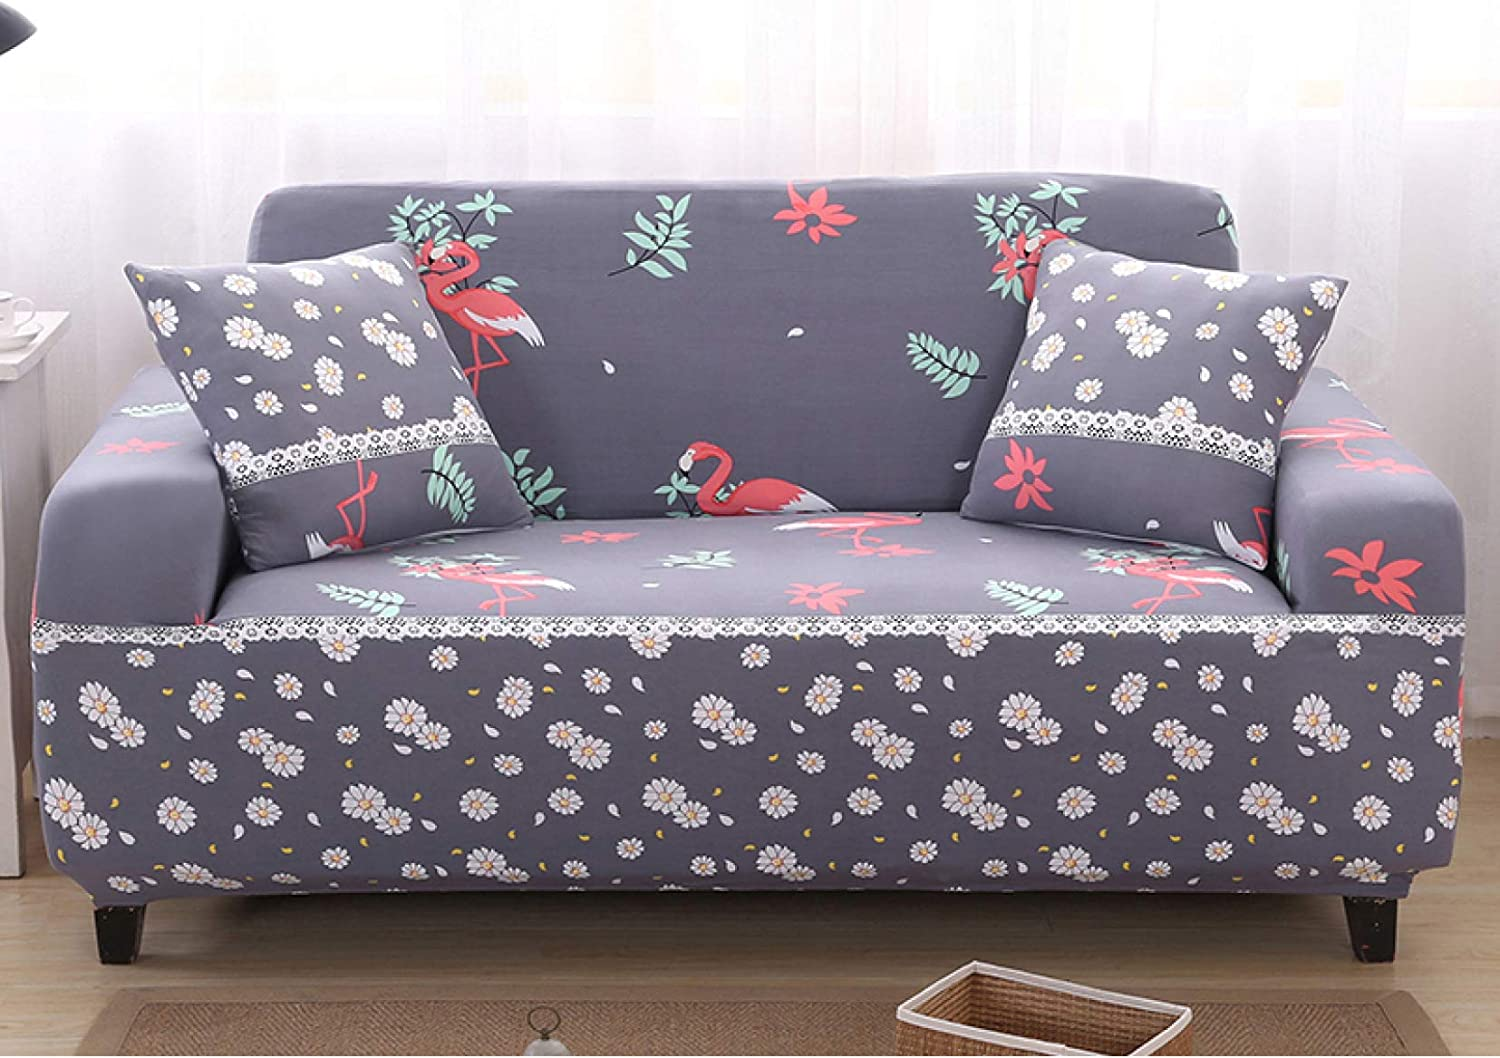 Super National uniform free shipping Fit Sofa Protector Max 61% OFF Anti-Dust Stretchy - Couch Slipcovers